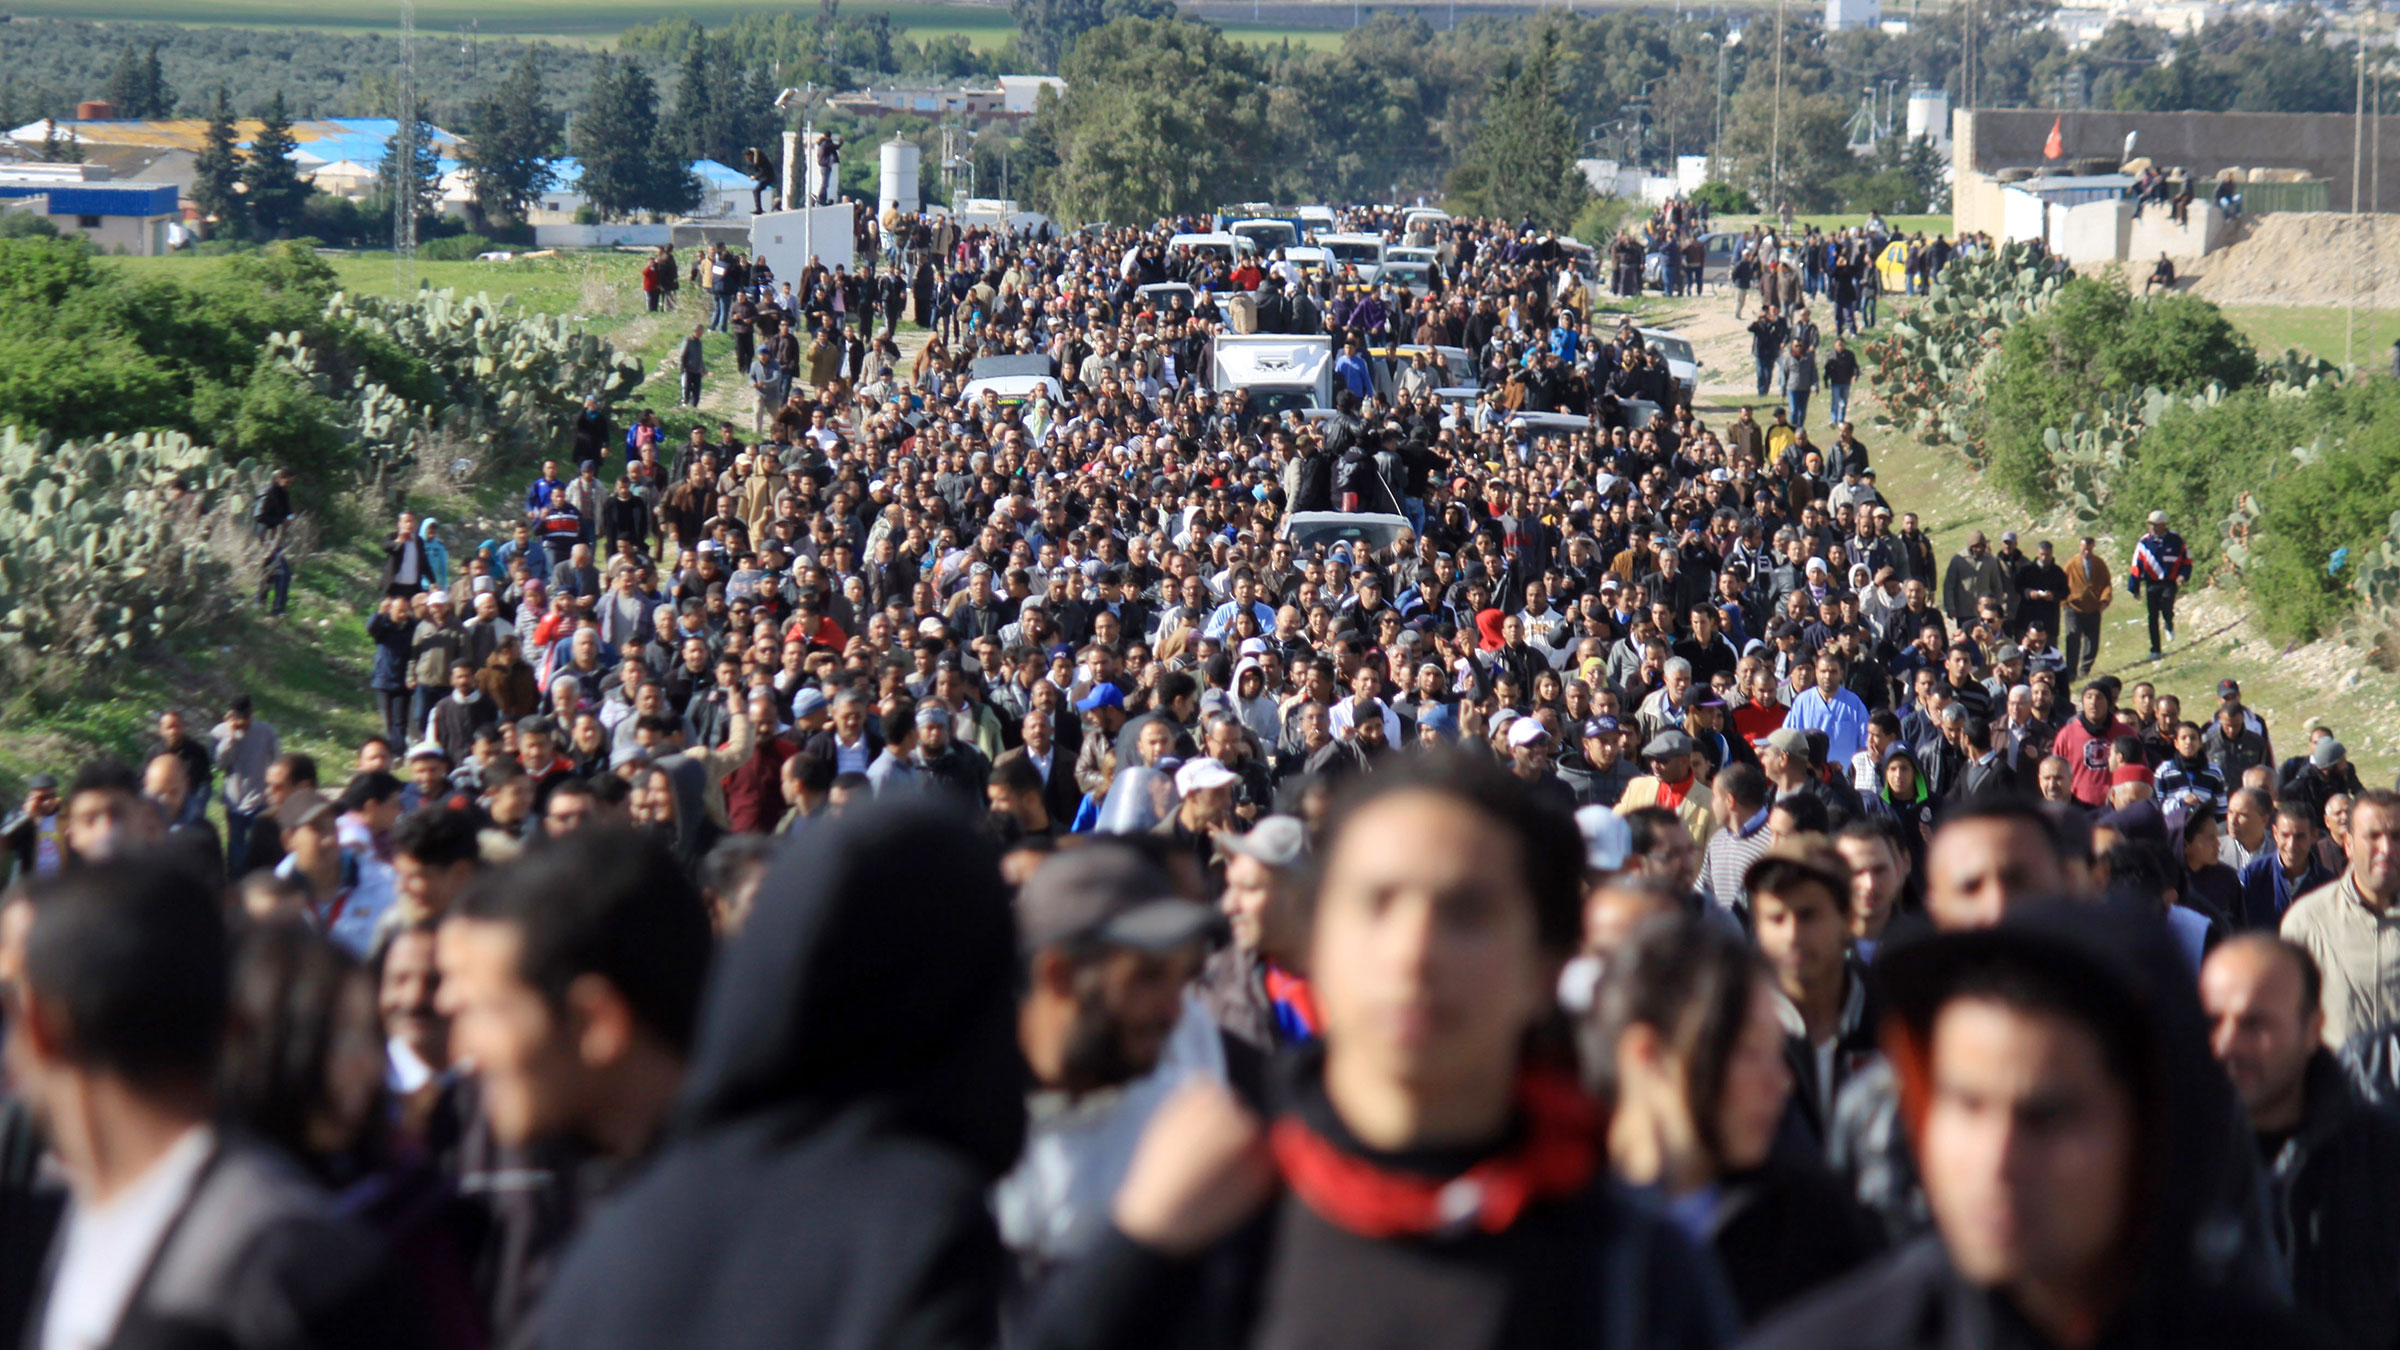 Nov. 30, 2012. Demonstrators in Sillana, Tunisia, gather to walk to Tunis. Tunisia's Prime Minister accused opposition parties and unions Thursday of provoking three days of violent clashes in Siliana and pleaded for patience while the government tackles the nation's economic problems.